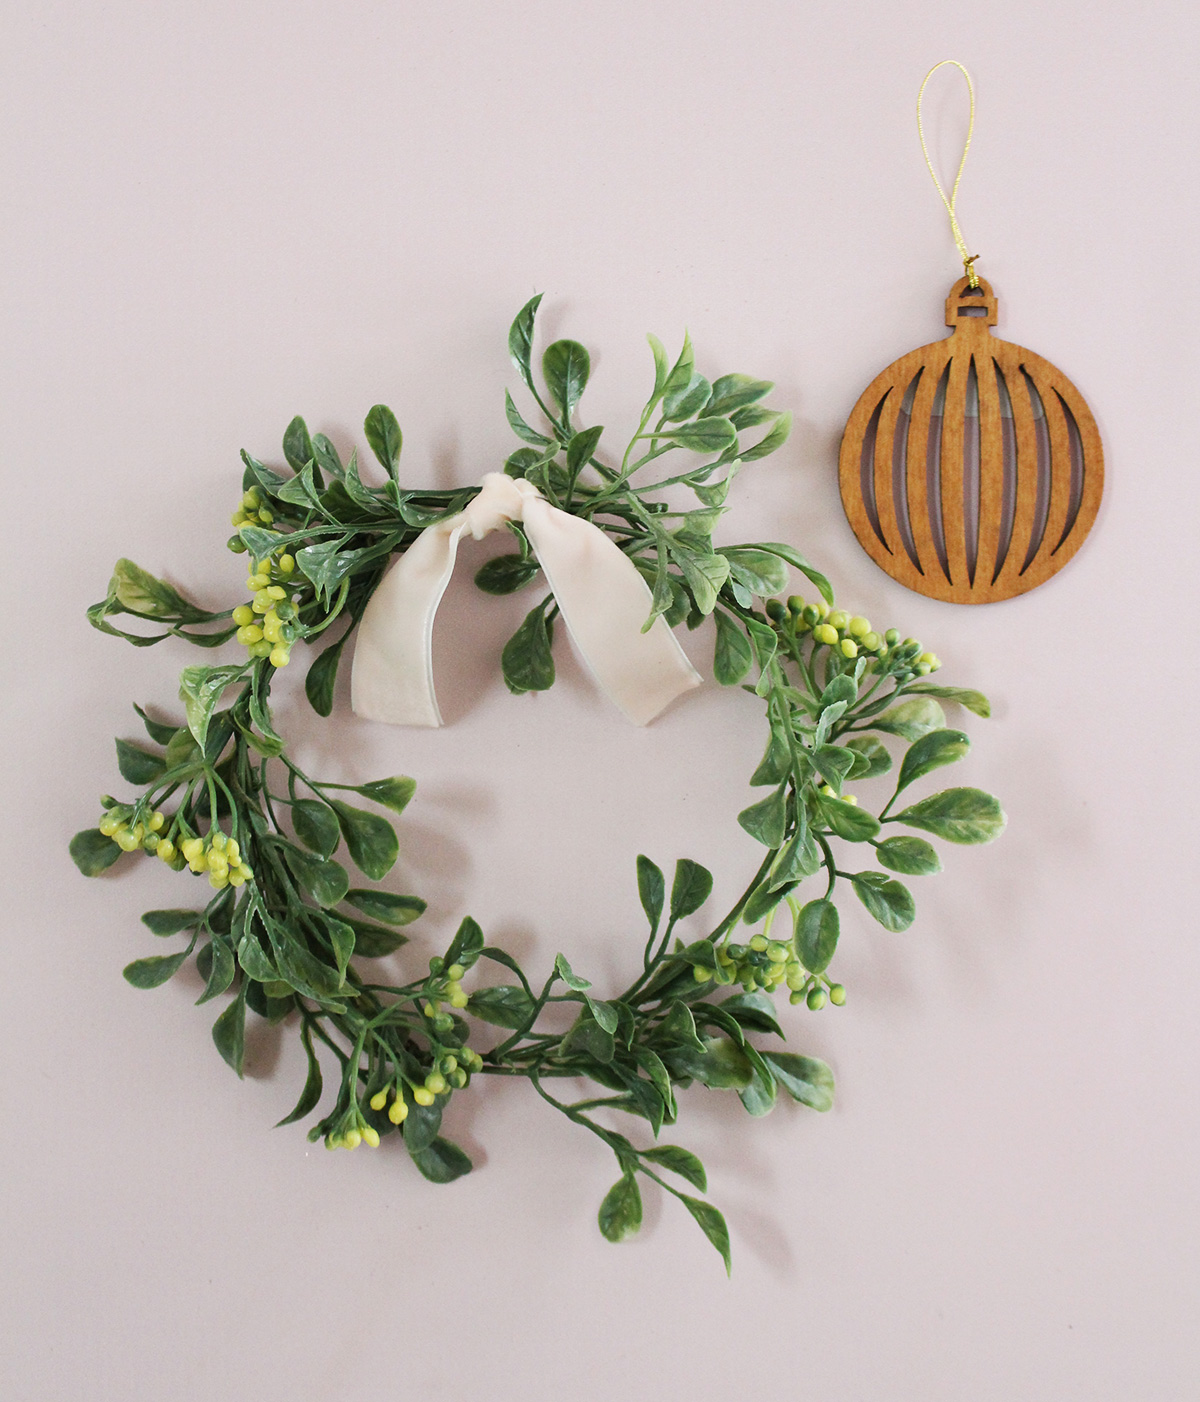 Handmade eucalyptus wreath as part of the first-ever Lily & Val curated surprise box!